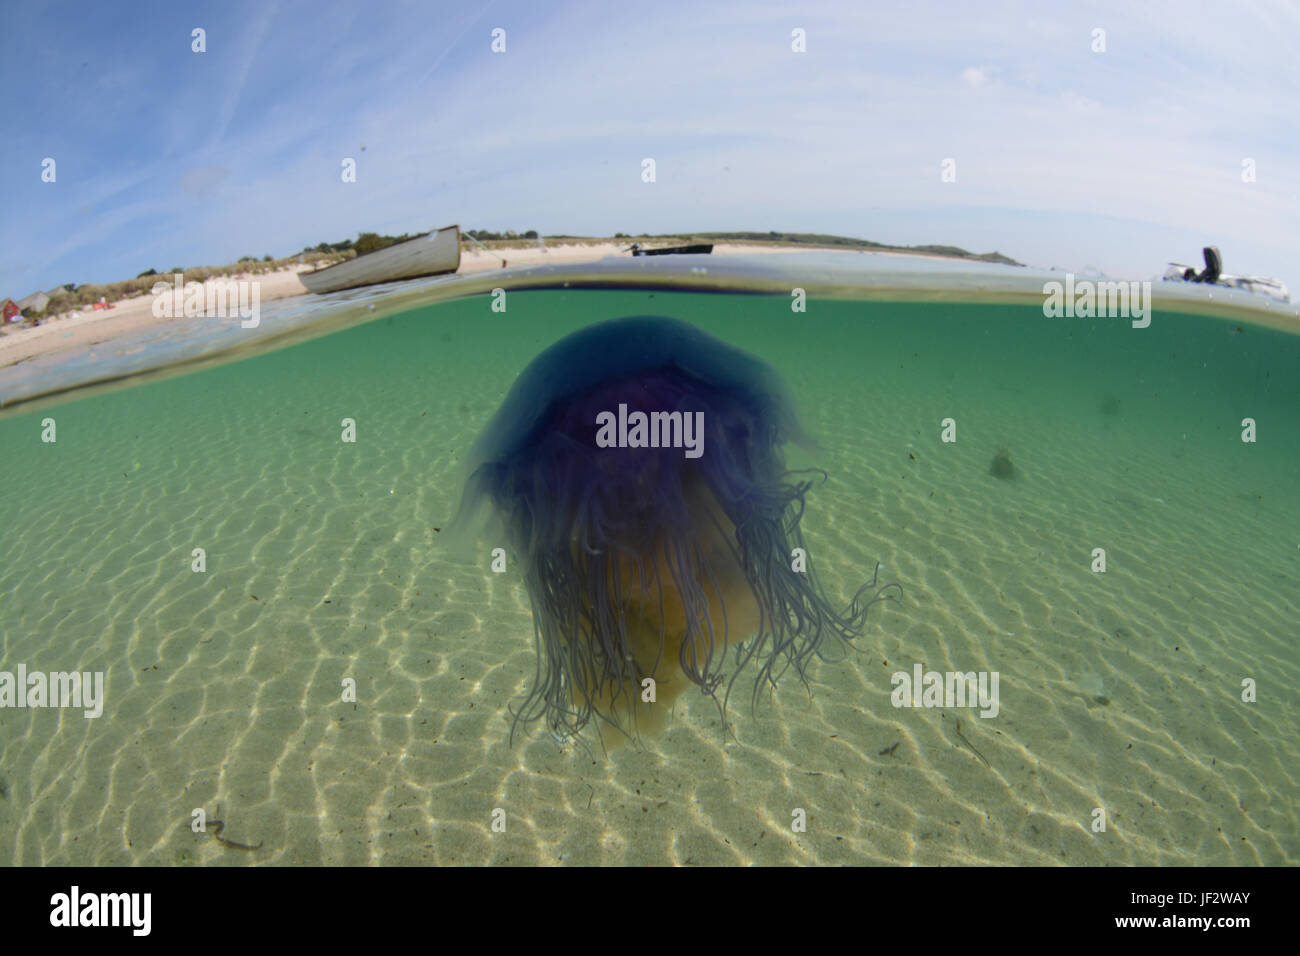 Blue jellyfish recorded near a beach on the Isles of Scilly in 2017 - Stock Image